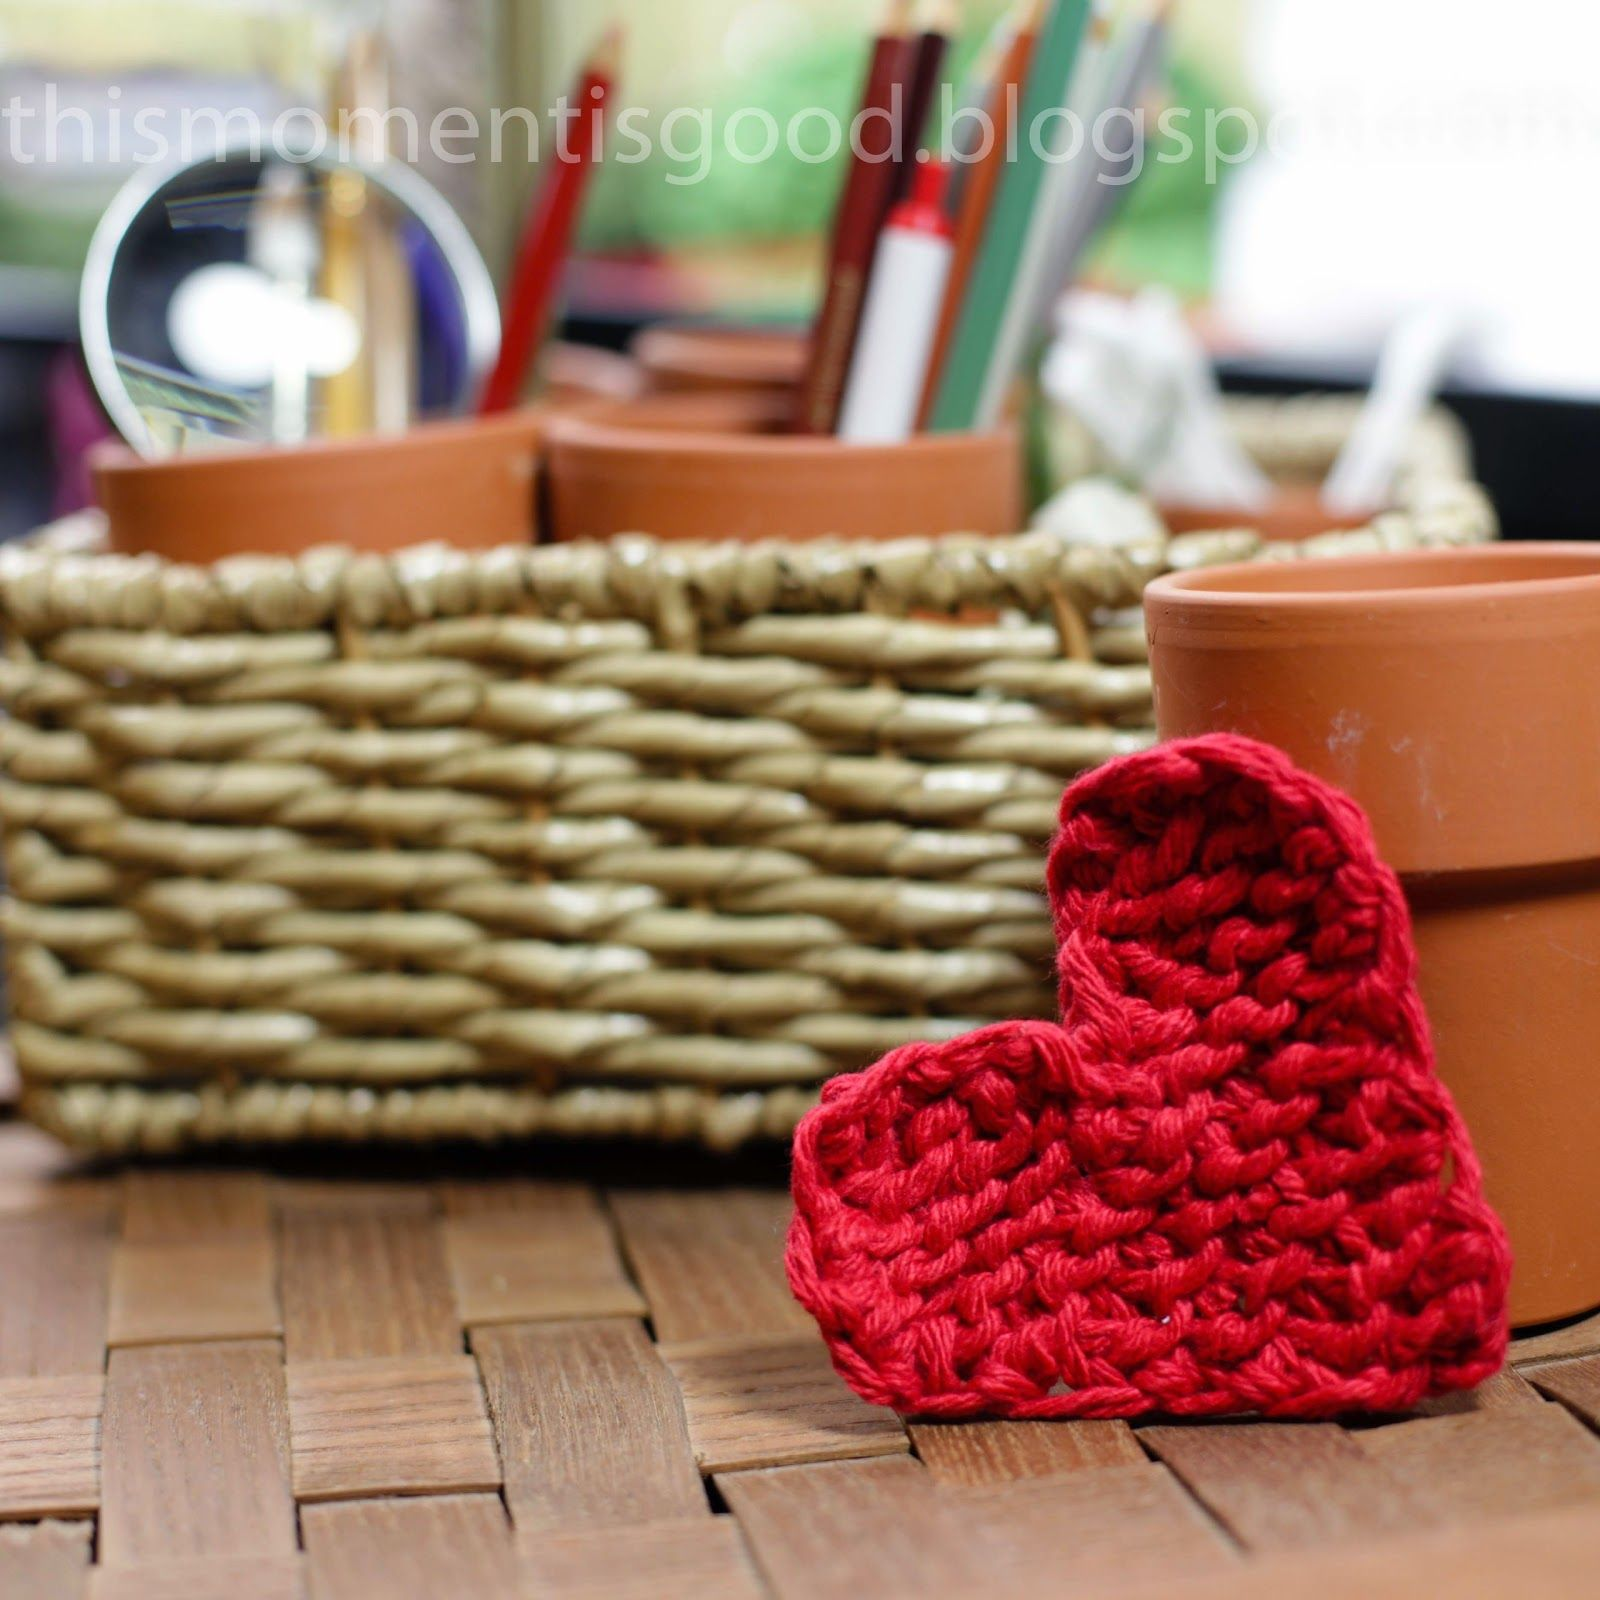 This Moment is Good!: LOOM KNIT HEART - FREE PATTERN | Loom Knitting ...